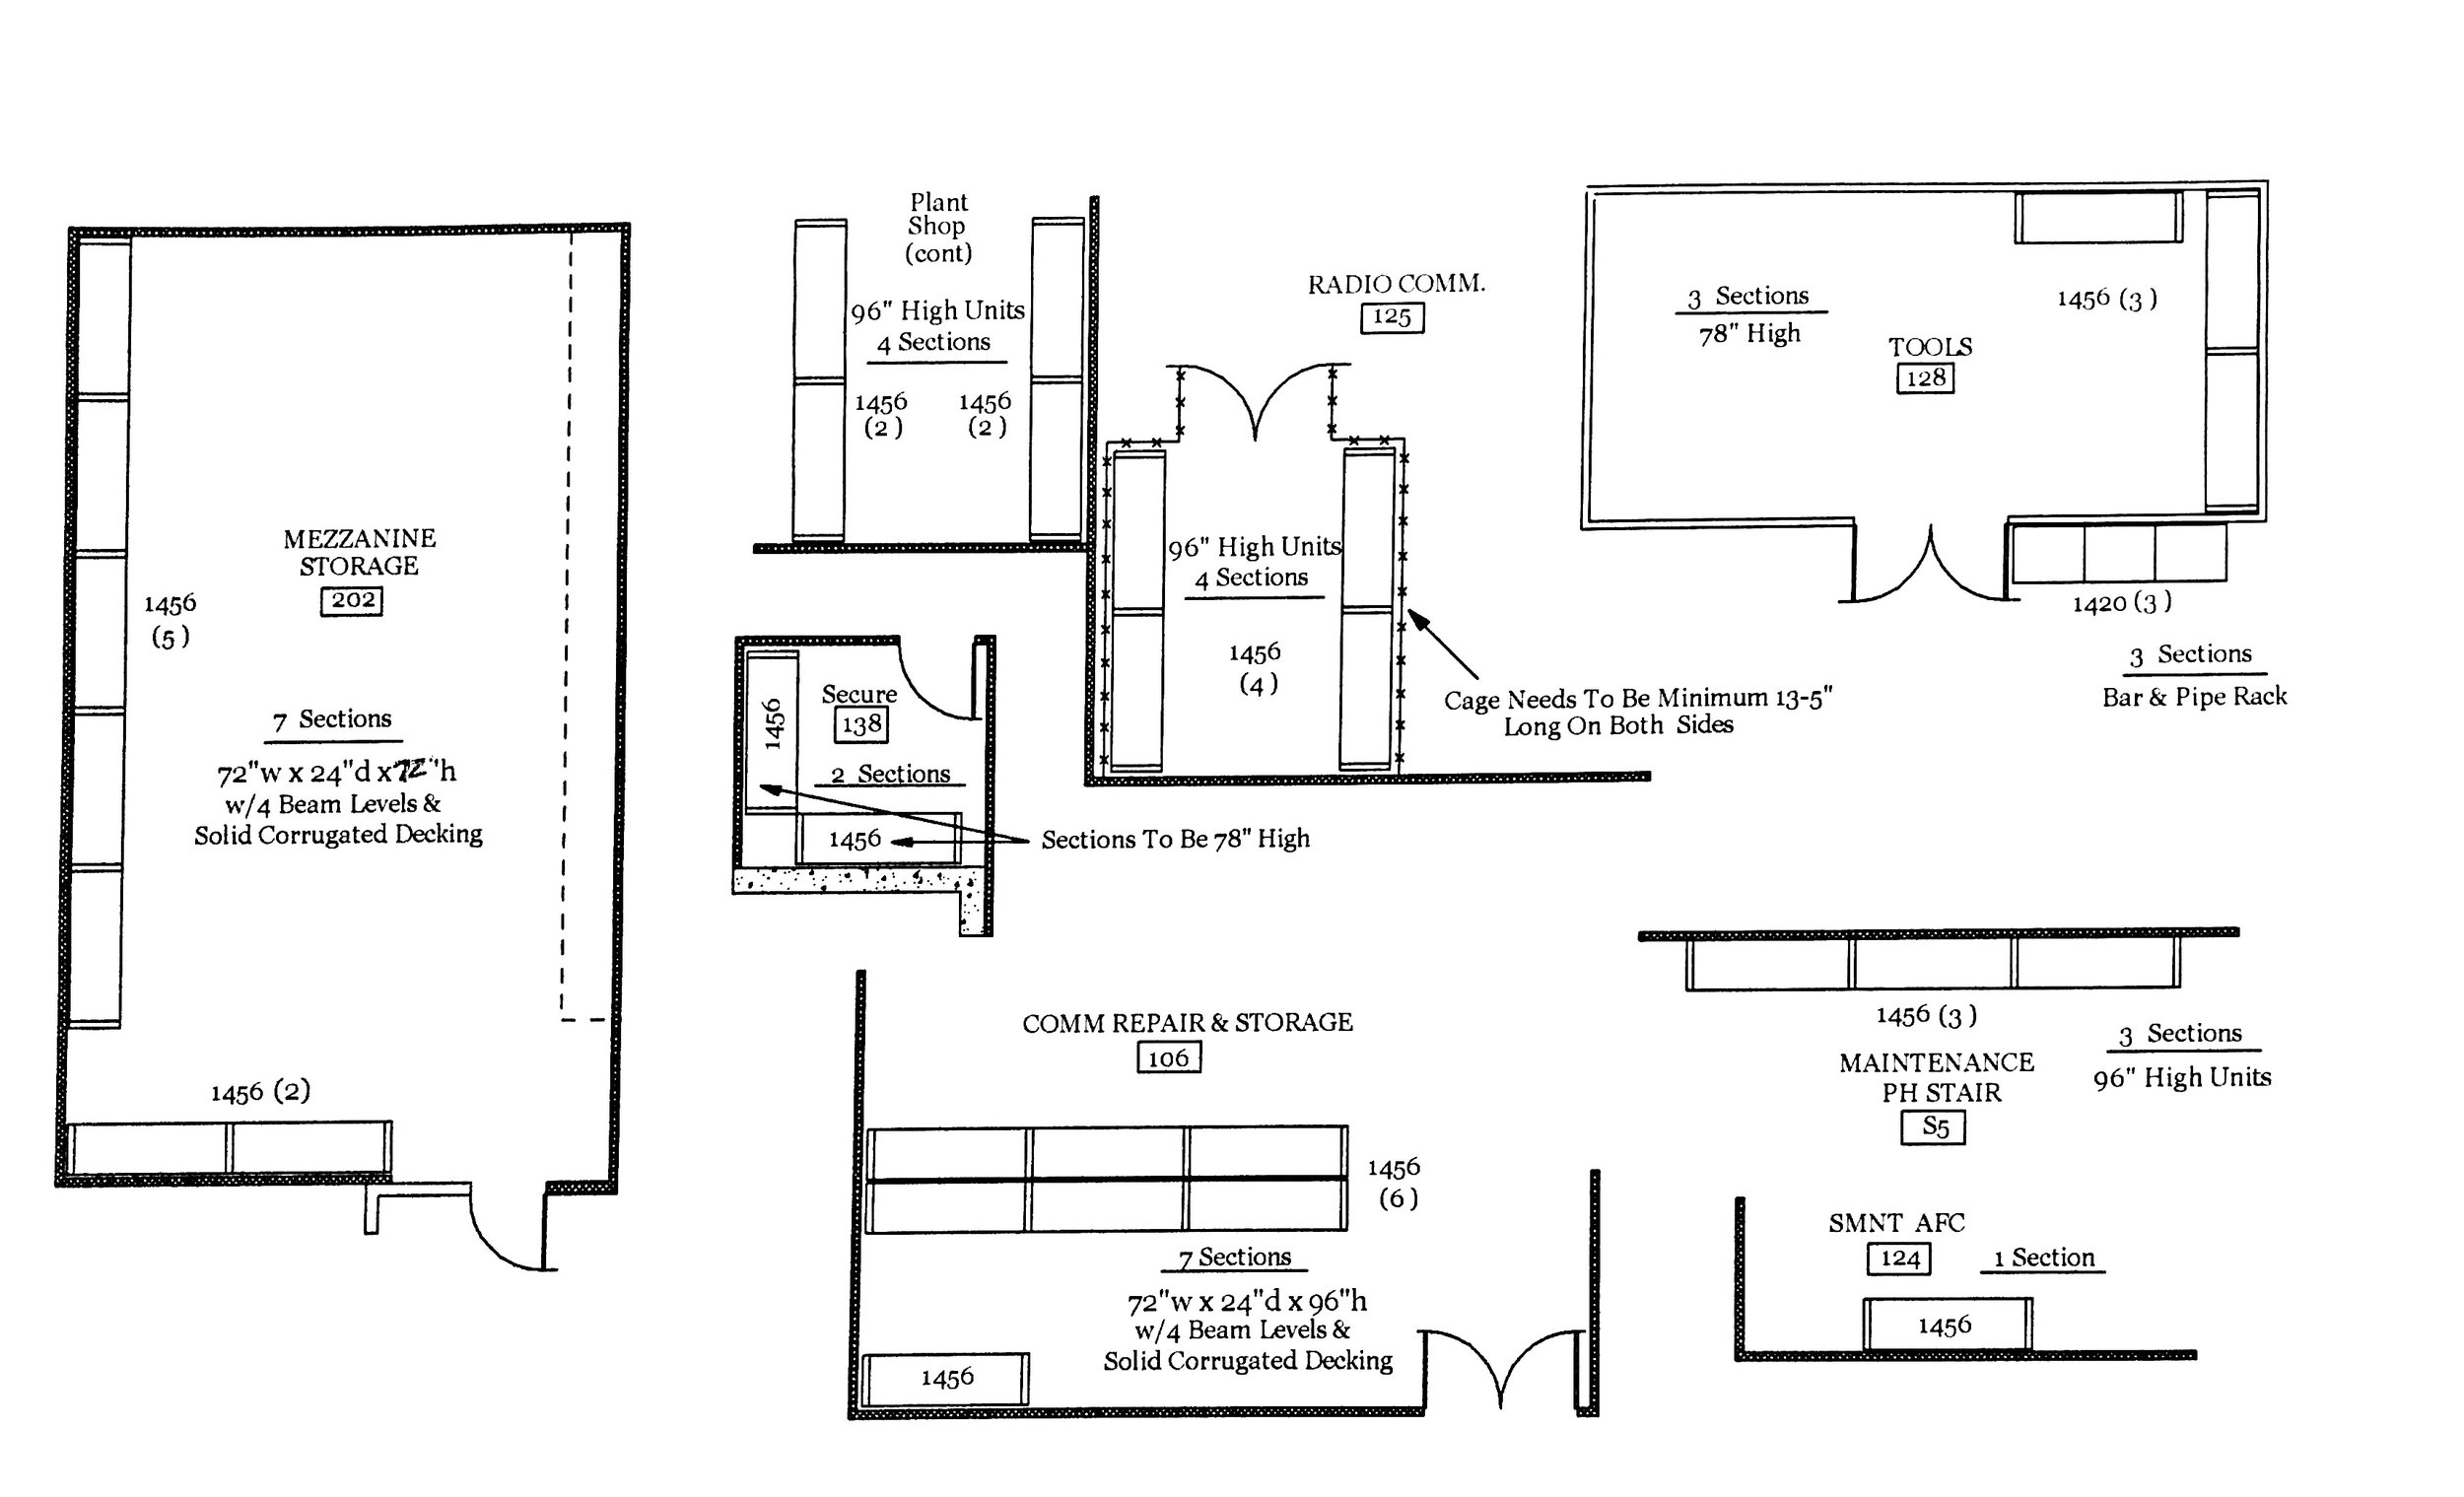 Layout for other warehouse sections.